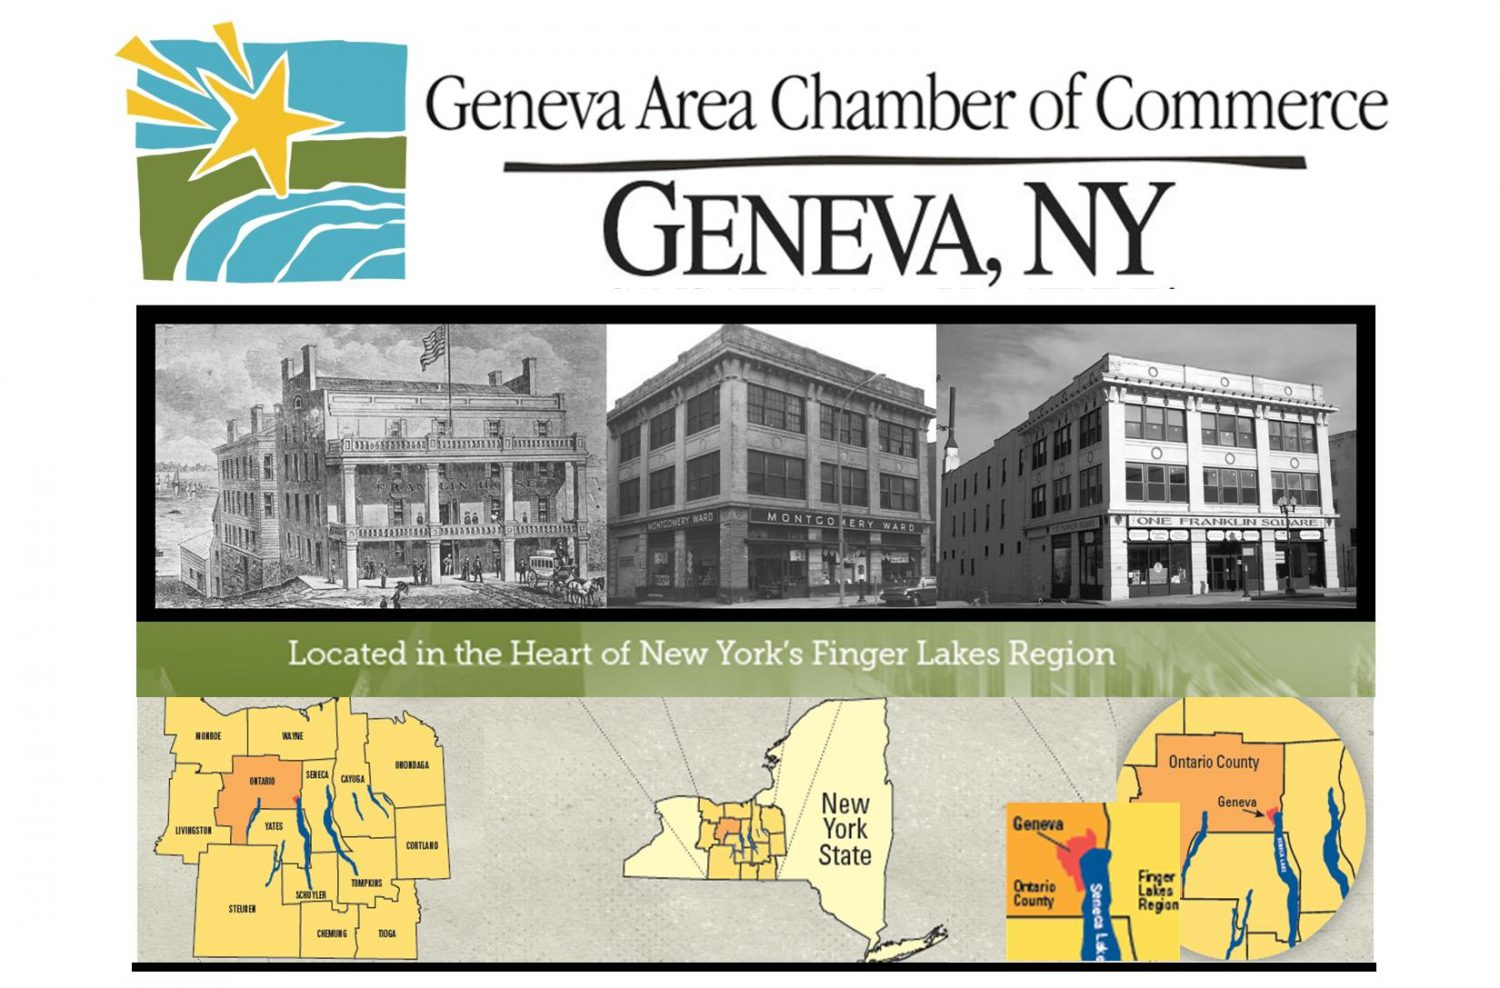 Geneva Area Chamber of Commerce